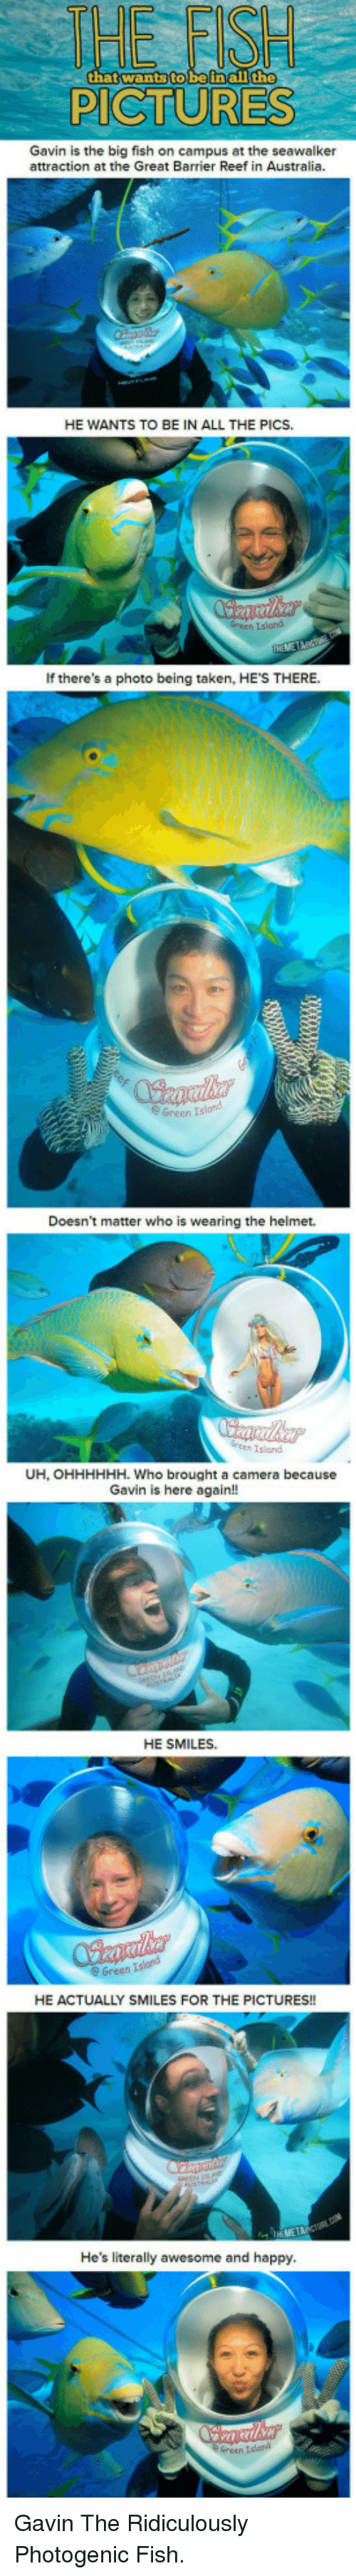 helmet: that wantsto beinall the  PICTURES  Gavin is the big fish on campus at the seawalker  attraction at the Great Barrier Reef in Australia.  HE WANTS TO BE IN ALL THE PICS.  If there's a photo being taken, HE'S THERE.  Green Island  Doesn't matter who is wearing the helmet.  Island  UH, OHHHHHH. Who brought a camera because  Gavin is here again!!  HE SMILES.  HE ACTUALLY SMILES FOR THE PICTURES!!  ME  He's literally awesome and happy  Green Island <p>Gavin The Ridiculously Photogenic Fish.</p>